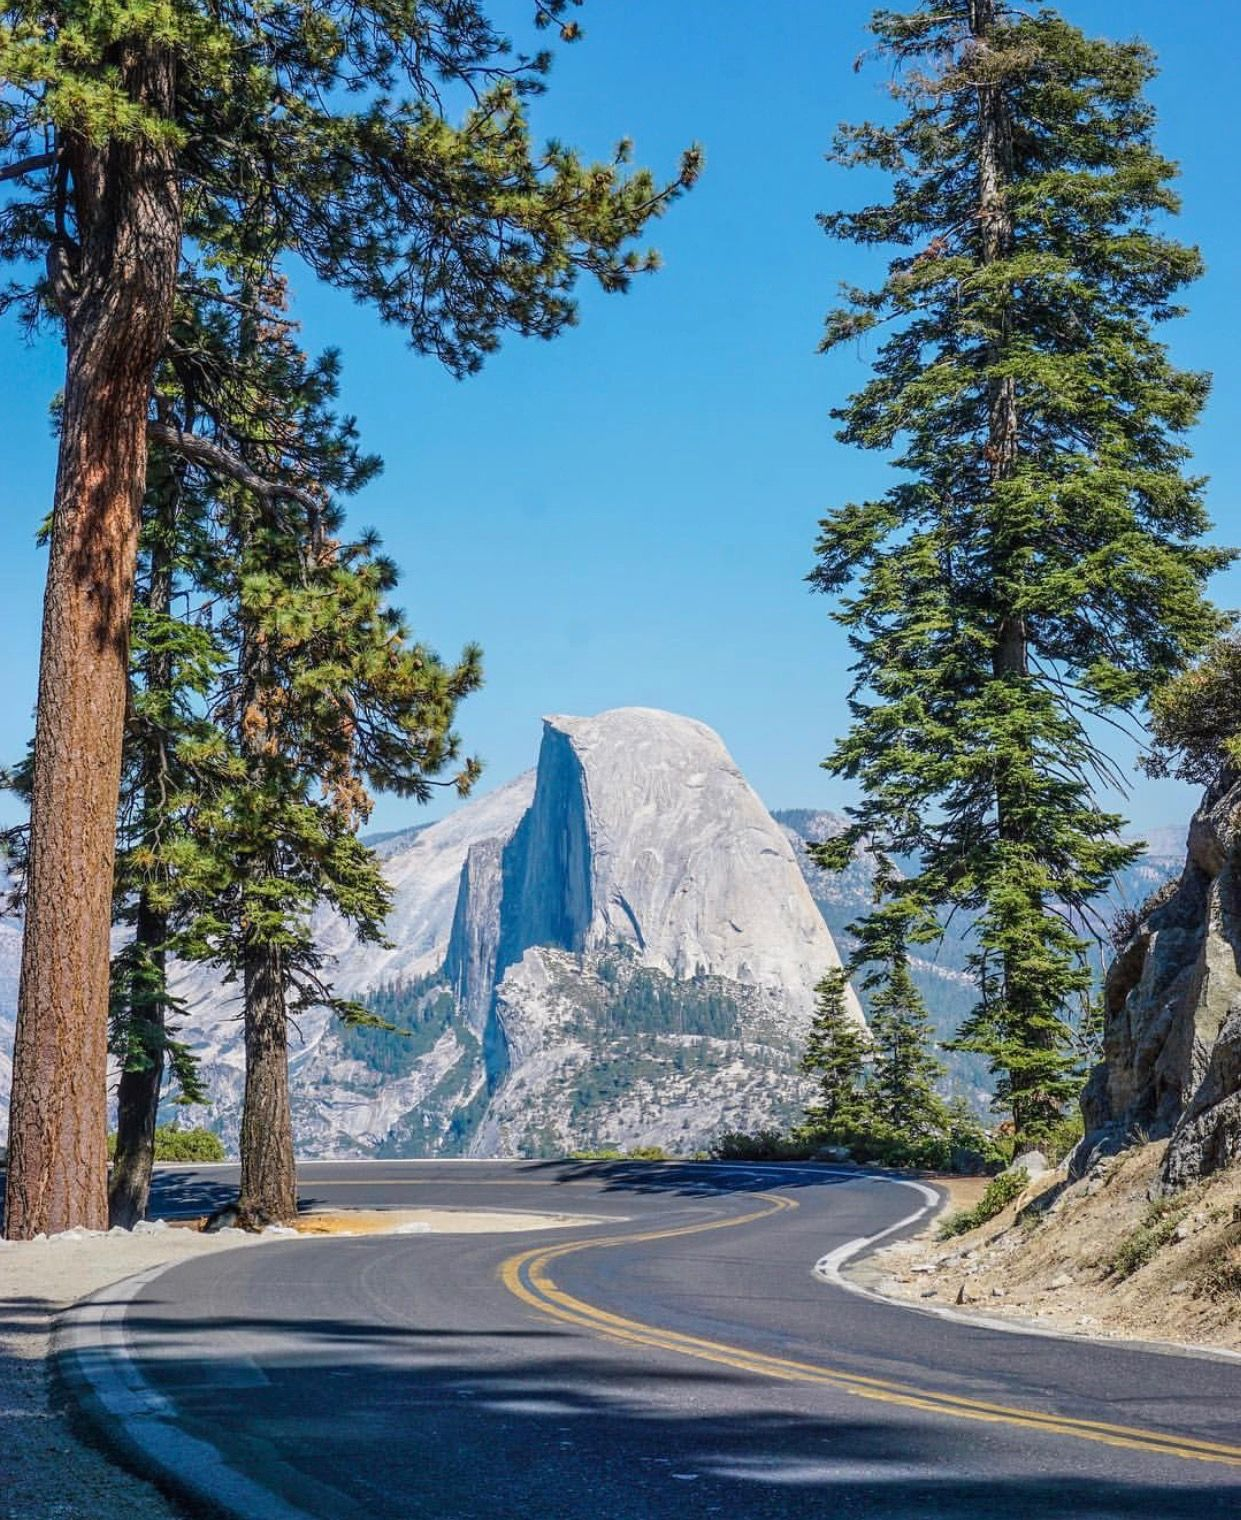 Yosemite National Park   places i've been and lived in 2019 ... on map of washington park, map of kensington park, map of jefferson park, map of liberty park, map of franklin park, map of garfield park, map of united states park, map of buhl park, map of yellowstone park, map of lincoln park, map of summit park, map of madison park, map of rosebud park, map of dubois park, map of skyline park, map of lake park,